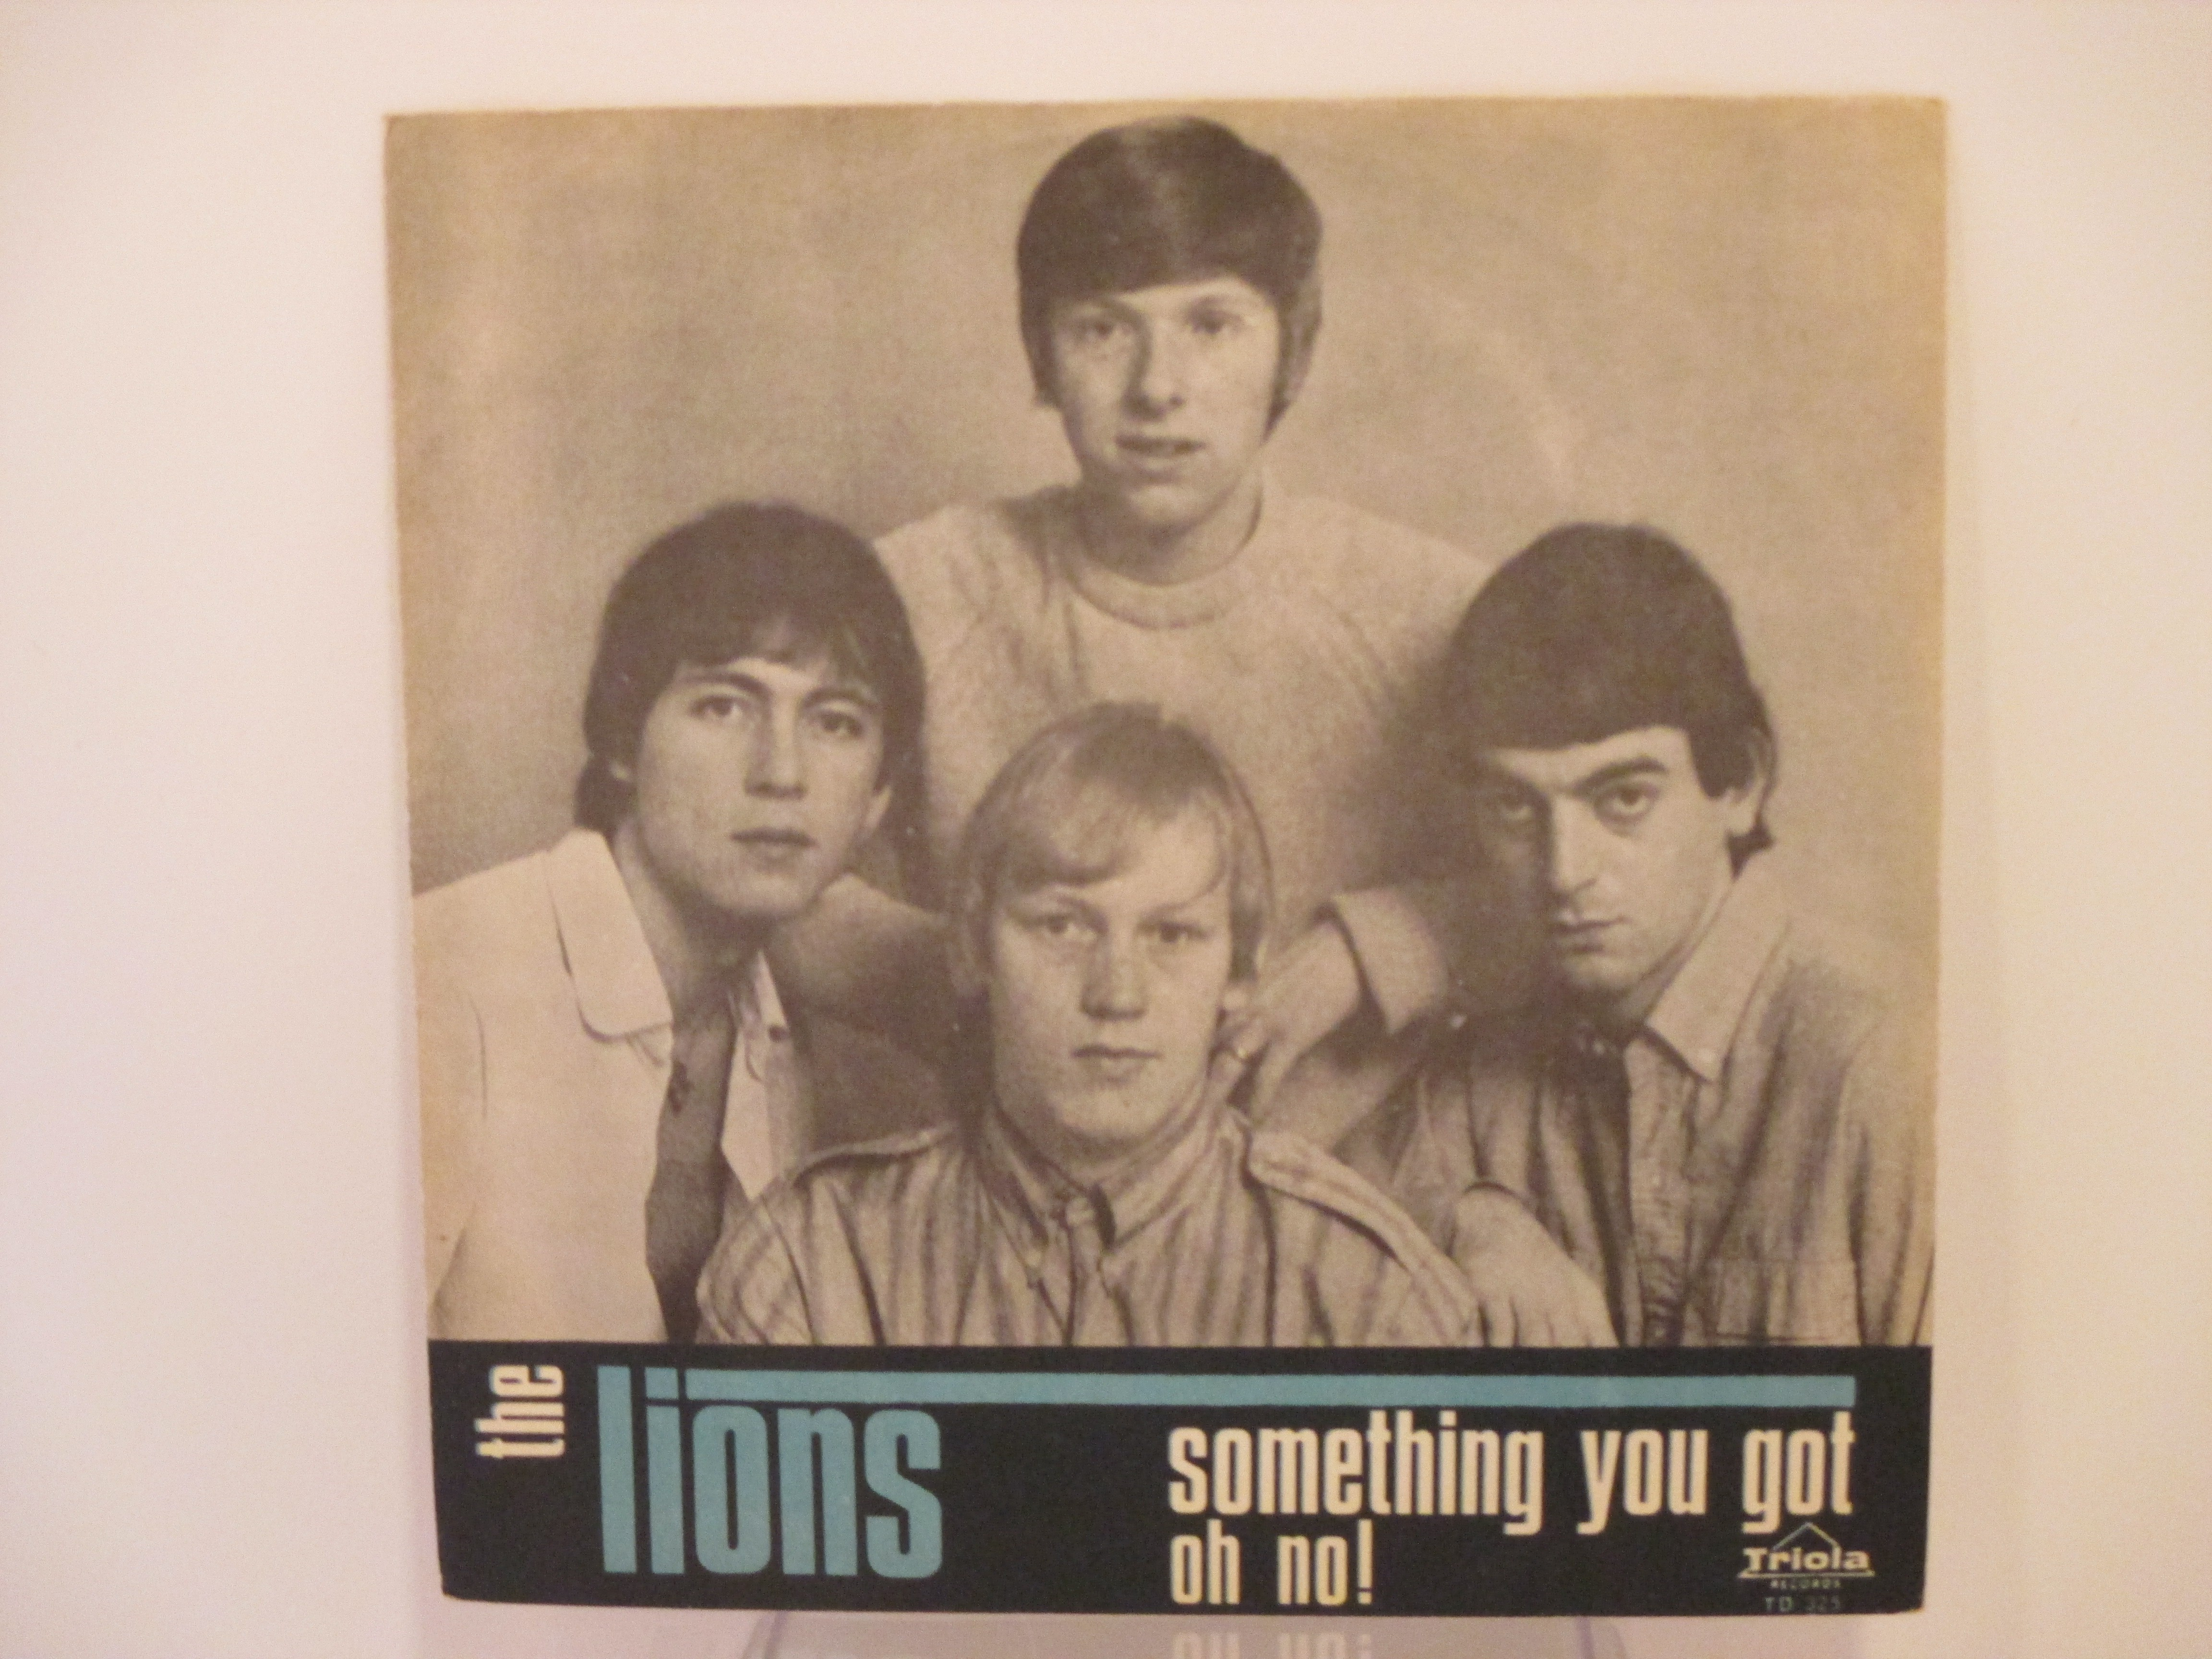 LIONS : Oh no ! / Something you got